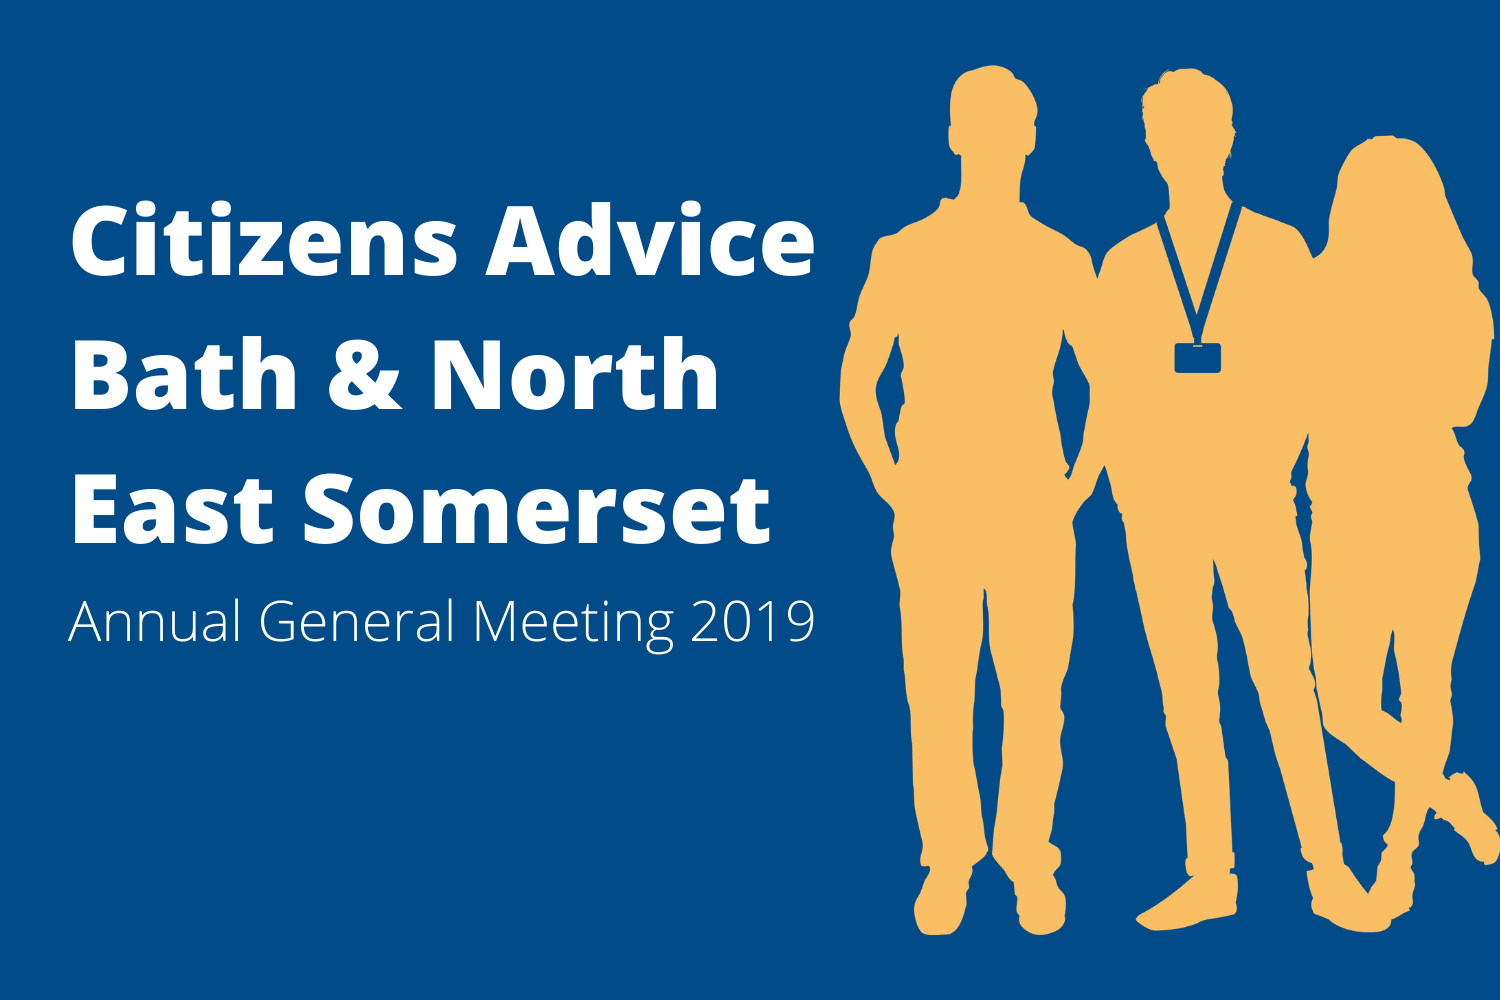 Citizens Advice Annual General Meeting 2019 Banner